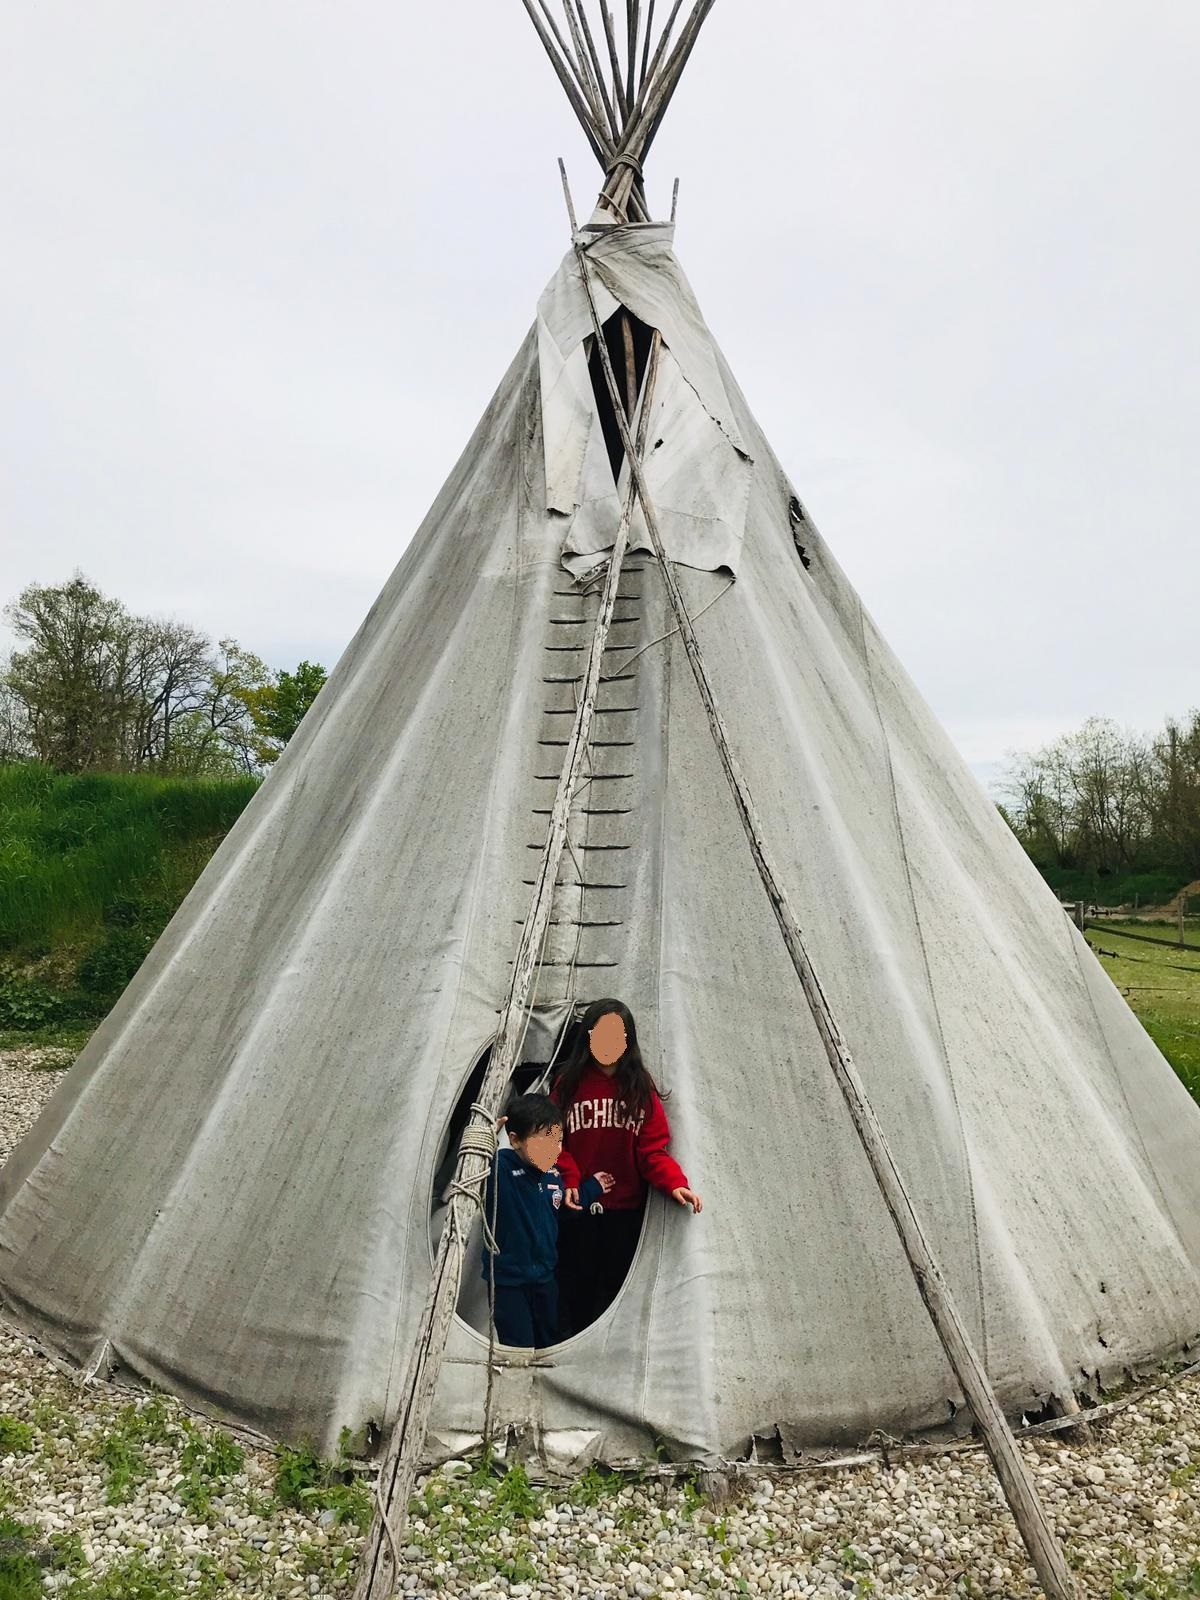 Tee Pee or not Tee Pee, that's the question